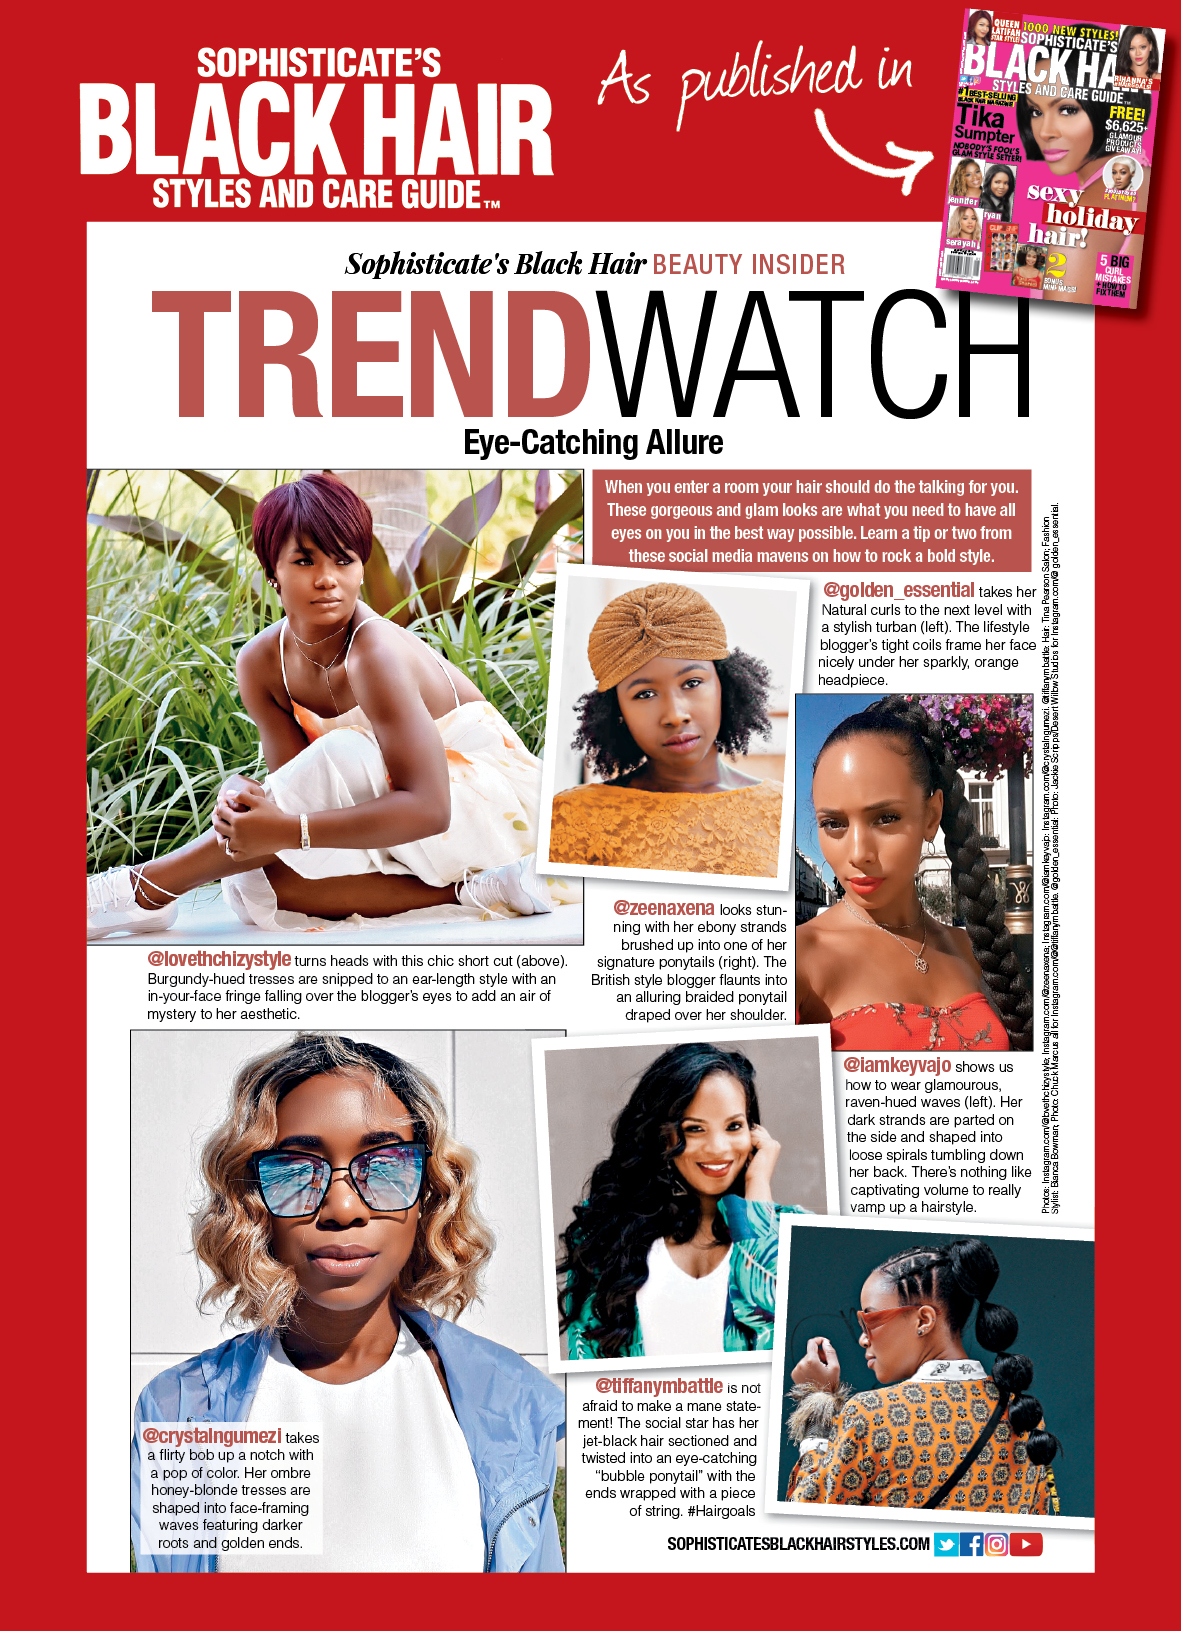 Sophisticate's Black Hair Magazine: Trend Watch